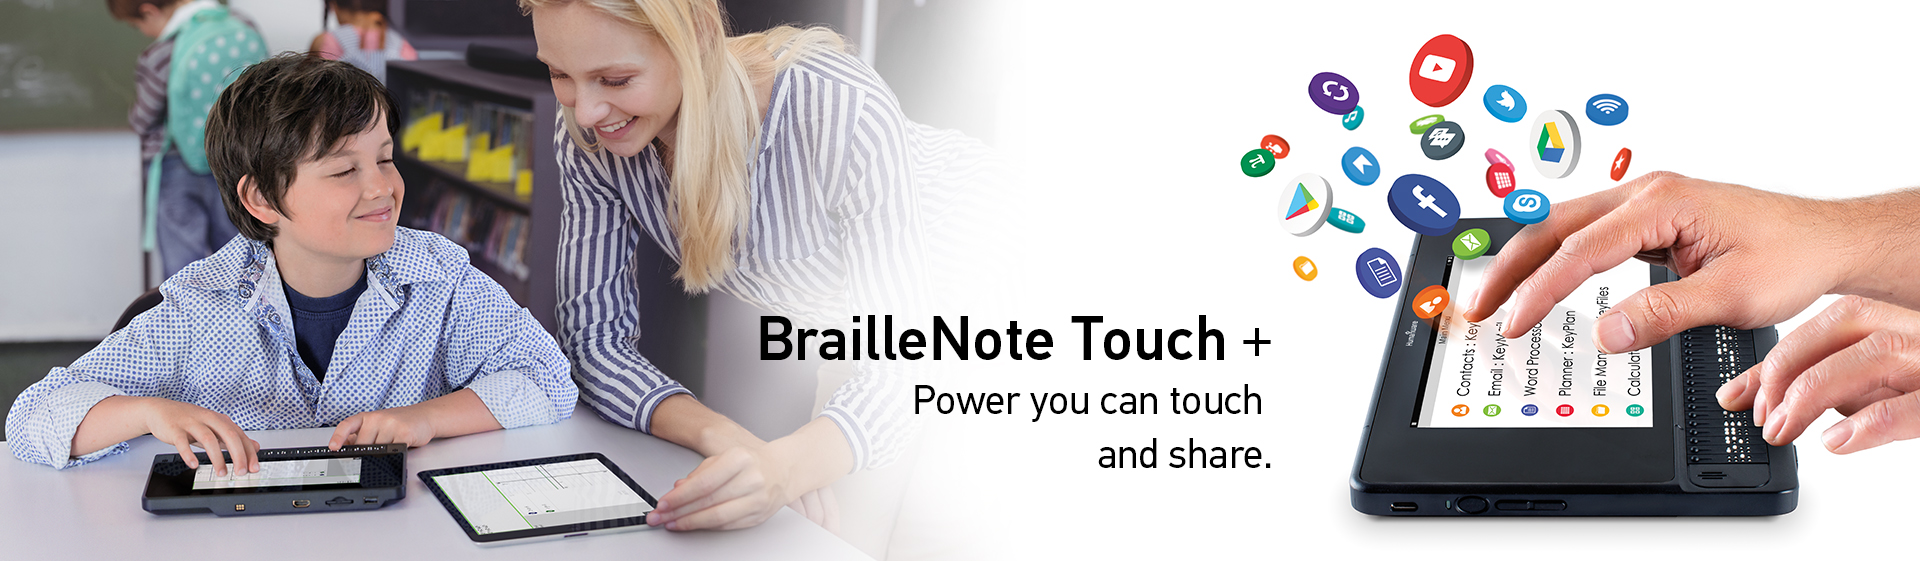 BrailleNote Touch +. Power you touch and share.